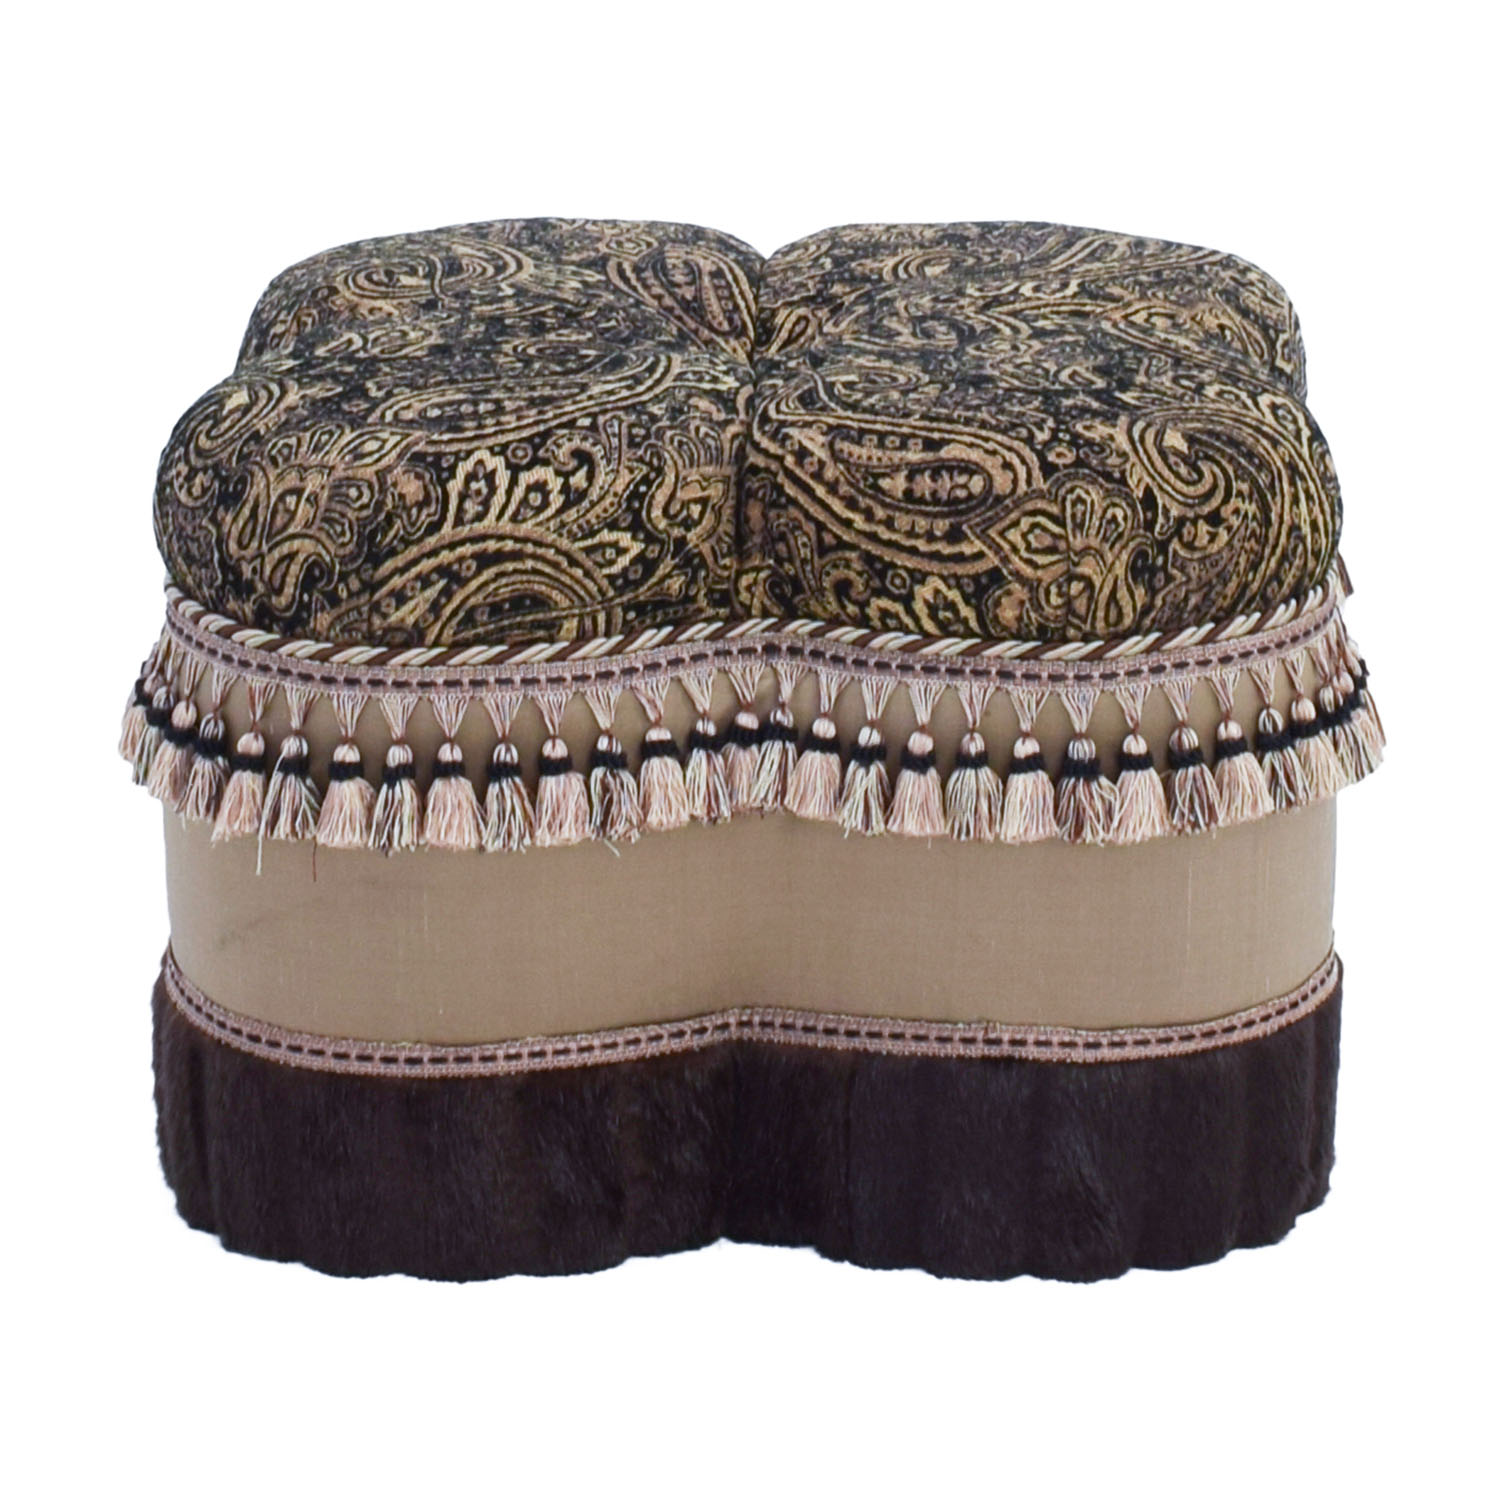 Bombay Co Bombay Co Paisley Faux Fur Ottoman price